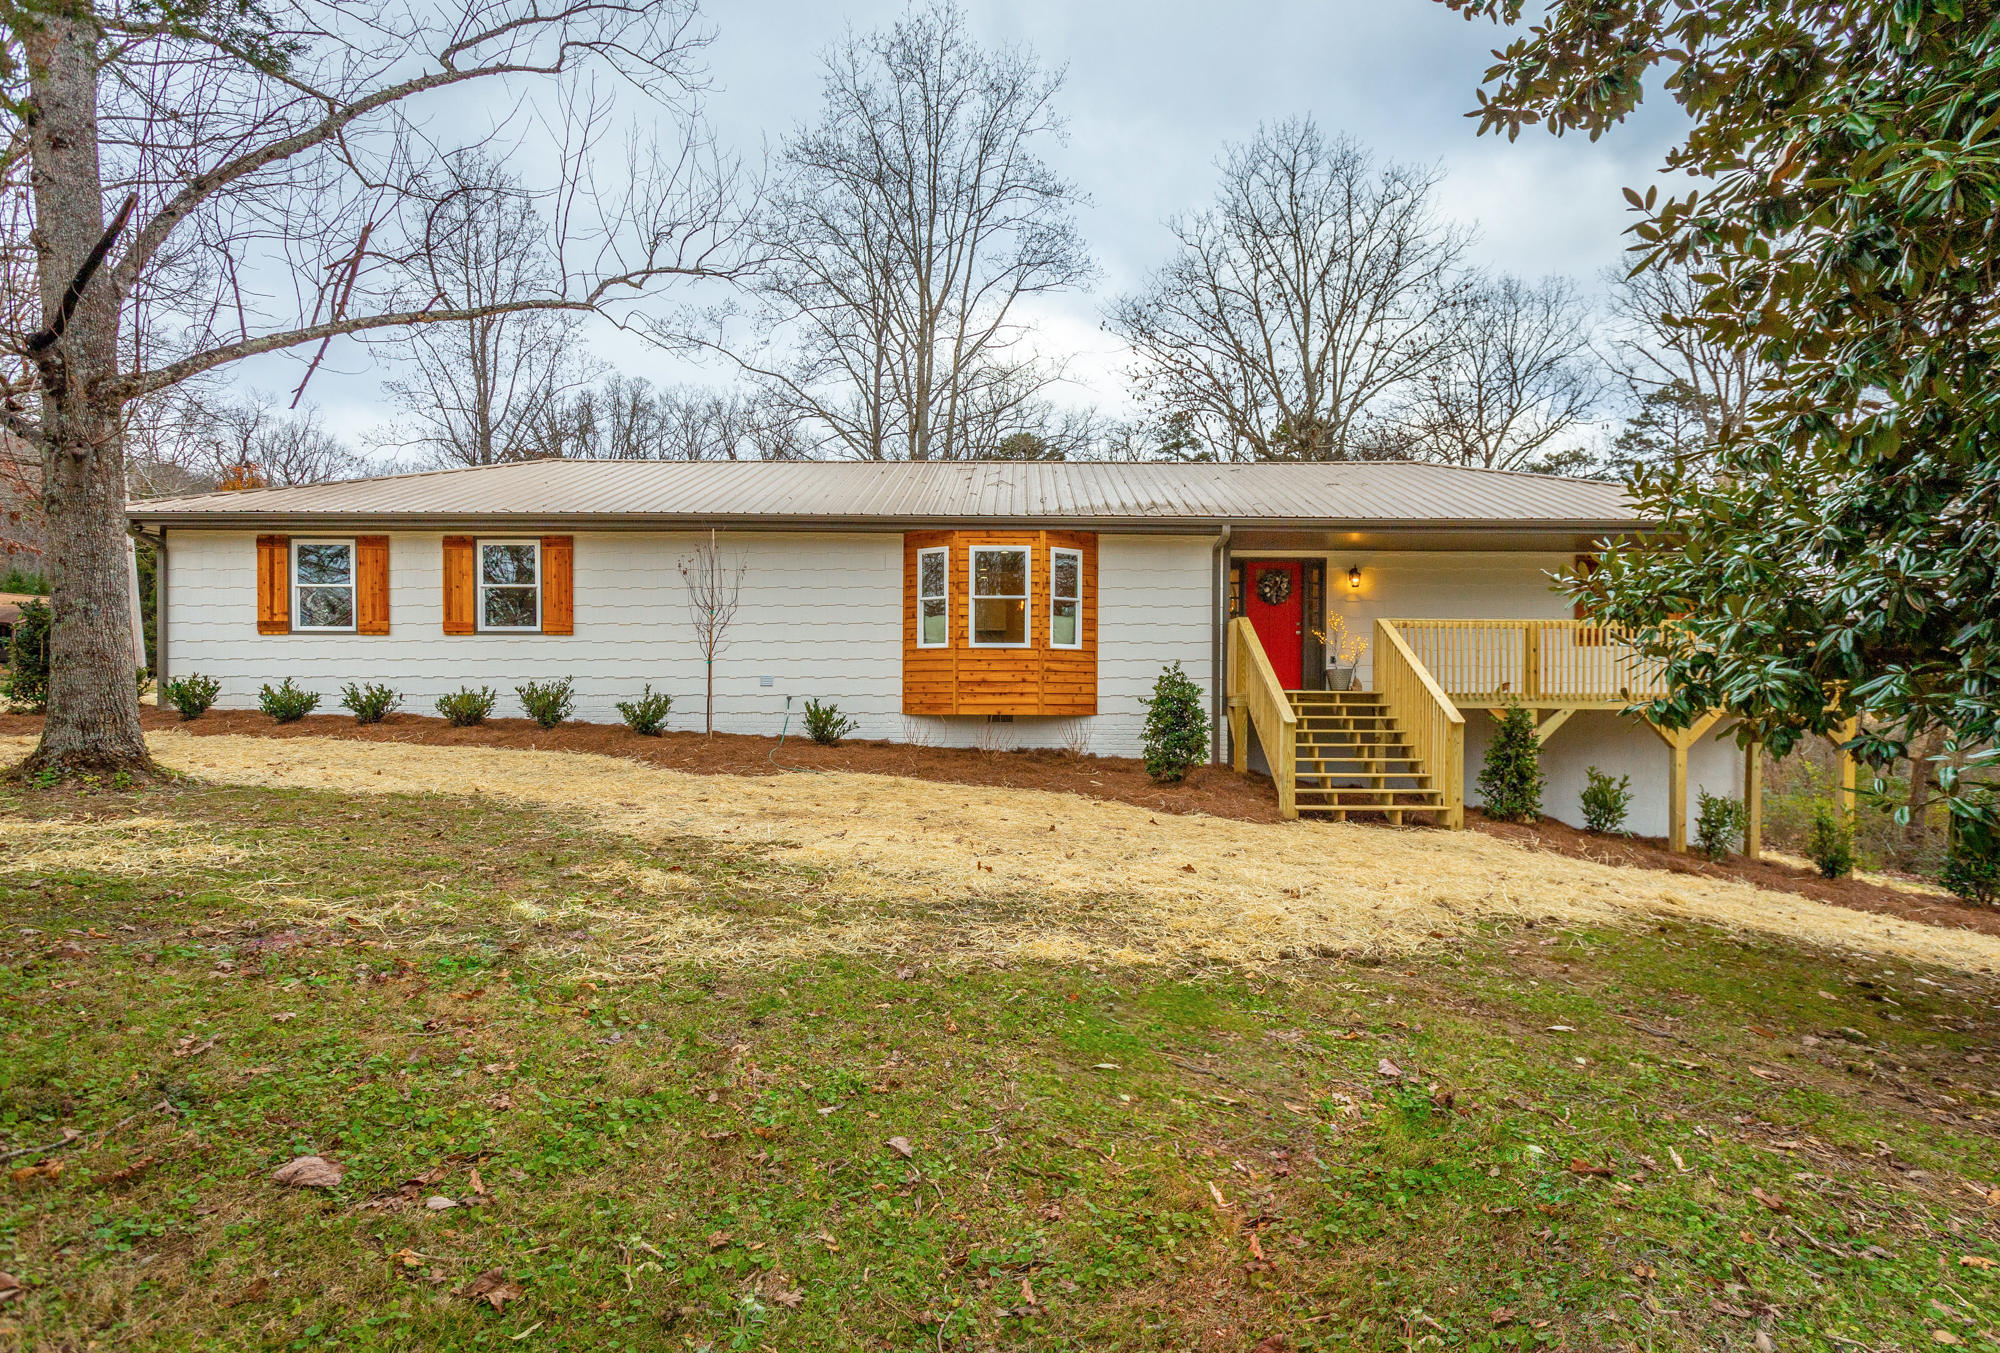 396 Timberlinks Dr, Signal Mountain, TN 37377